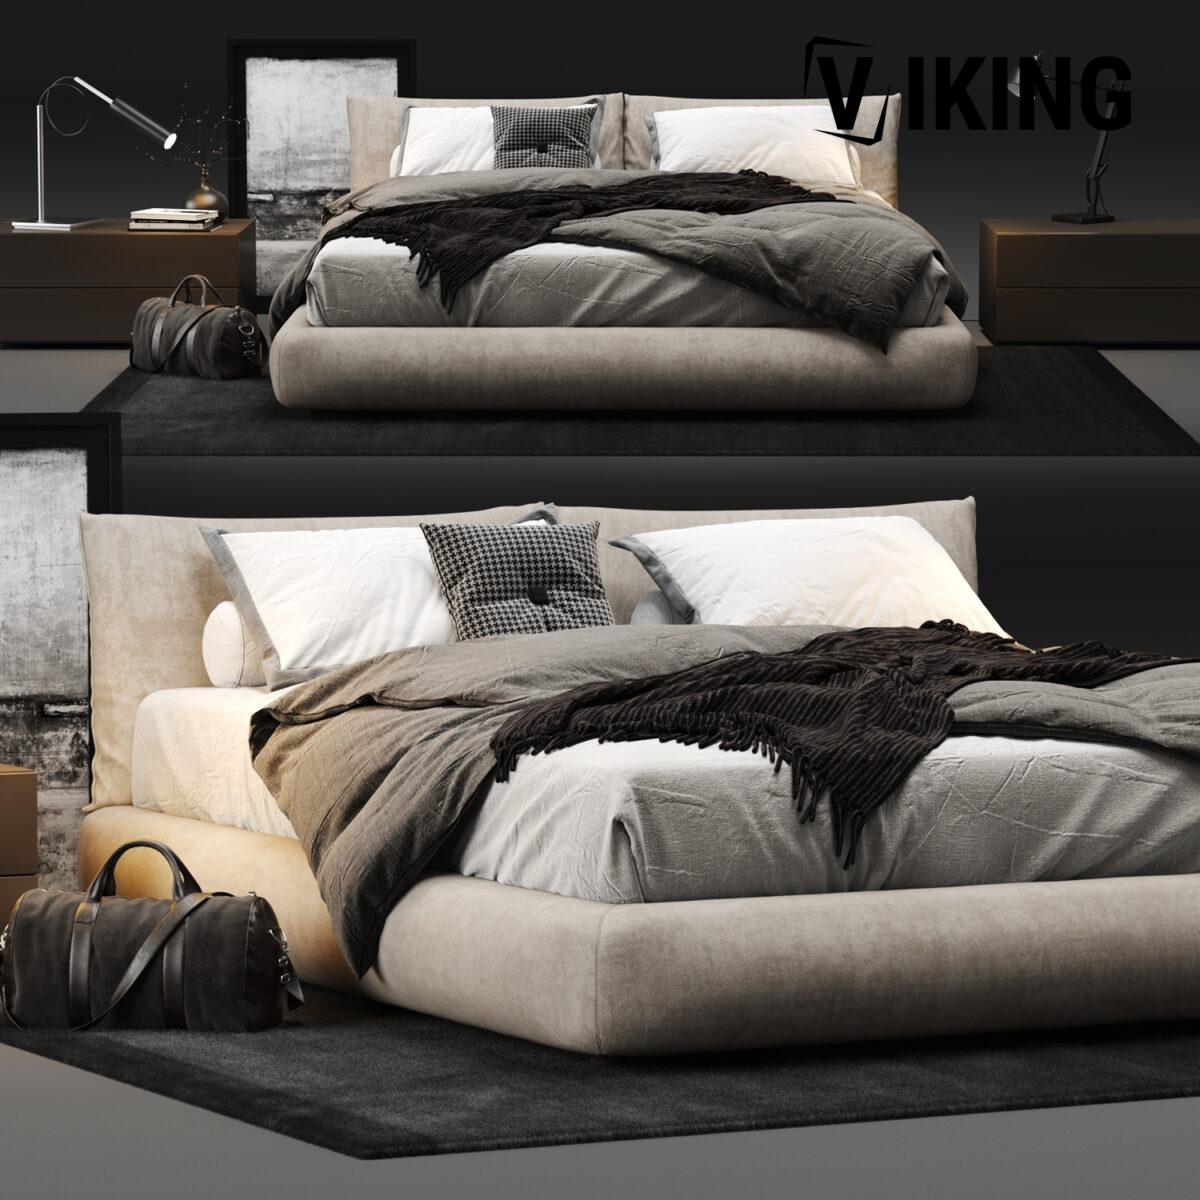 3D Bed Model 201 Free Download 1 1200x1200 1